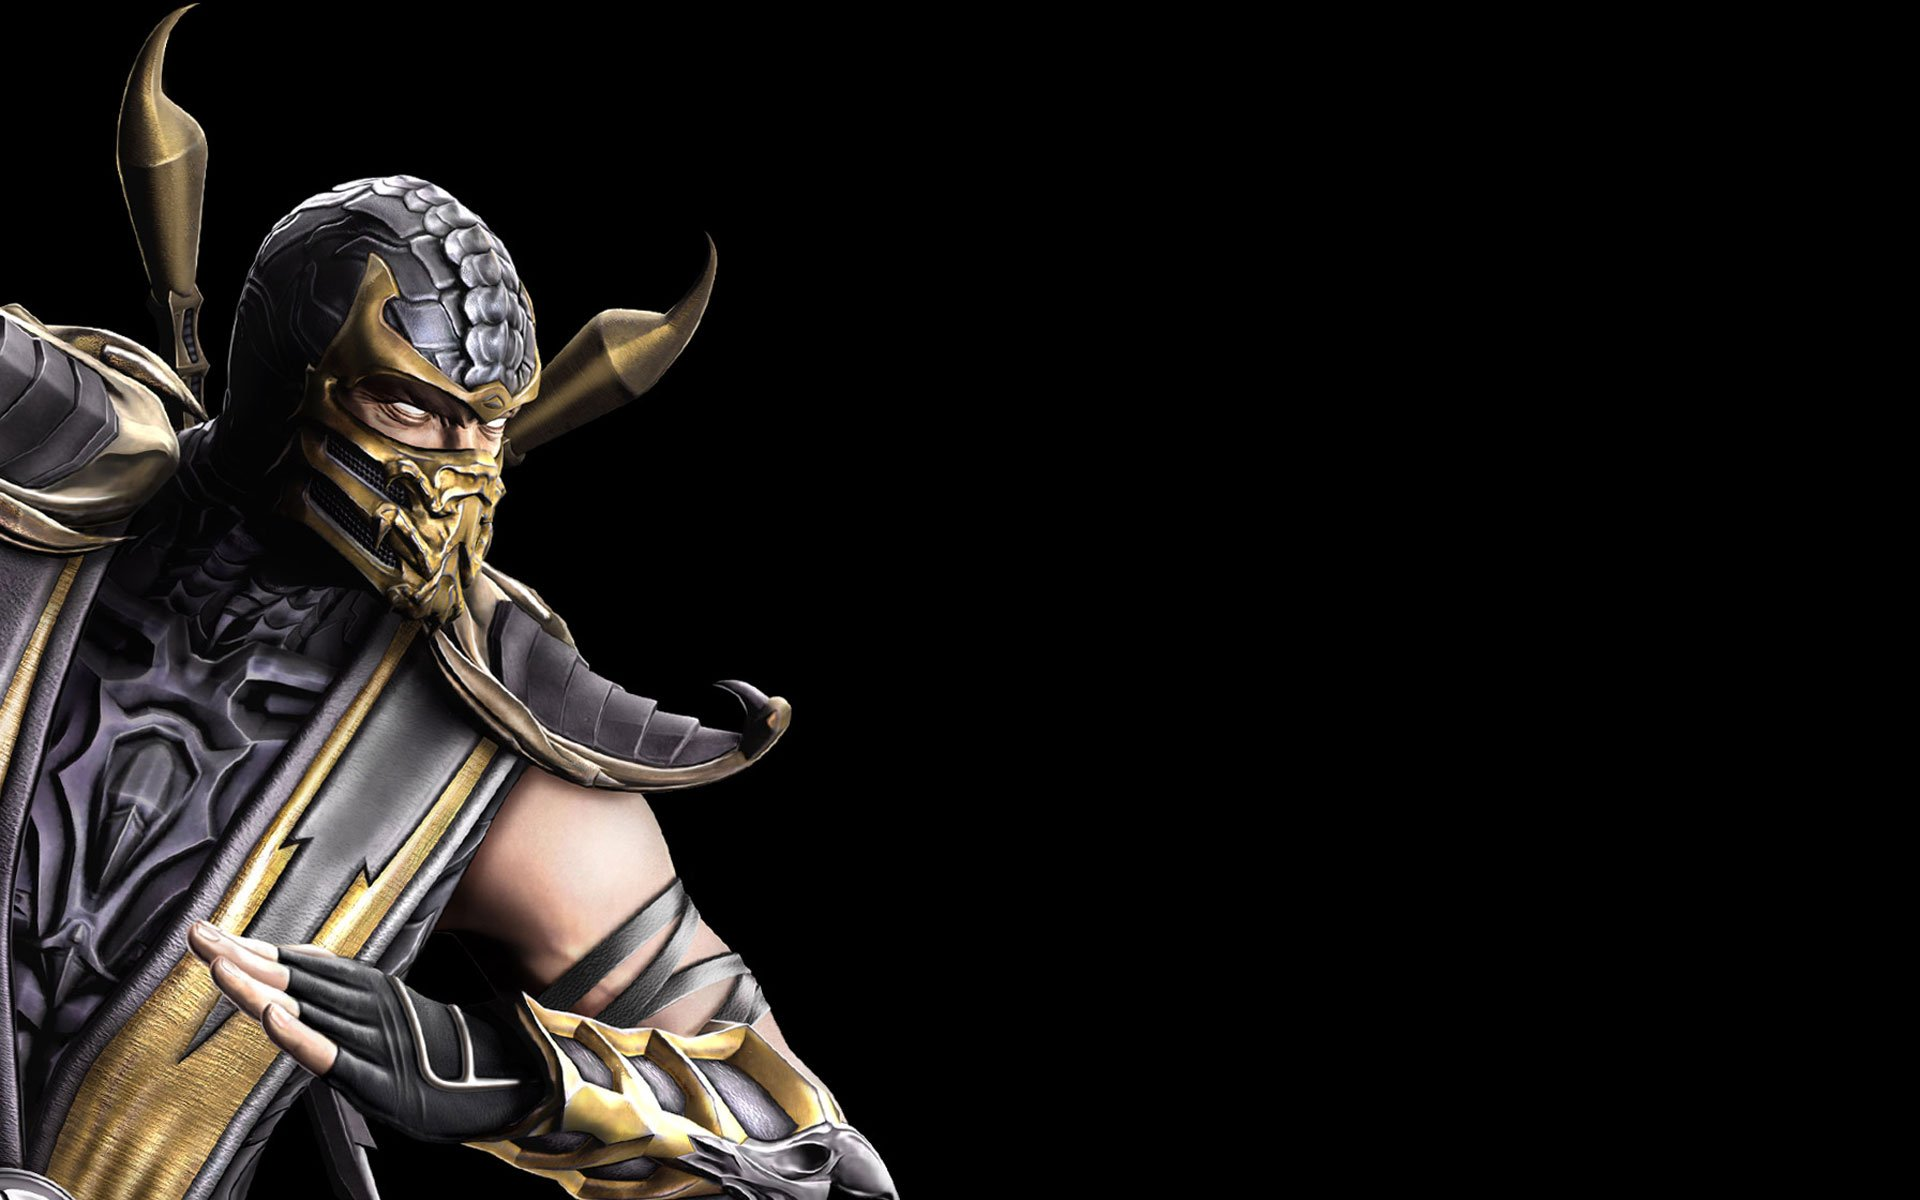 Free Download Wallpaper Mortal Kombat 9 Wallpaper Scorpion